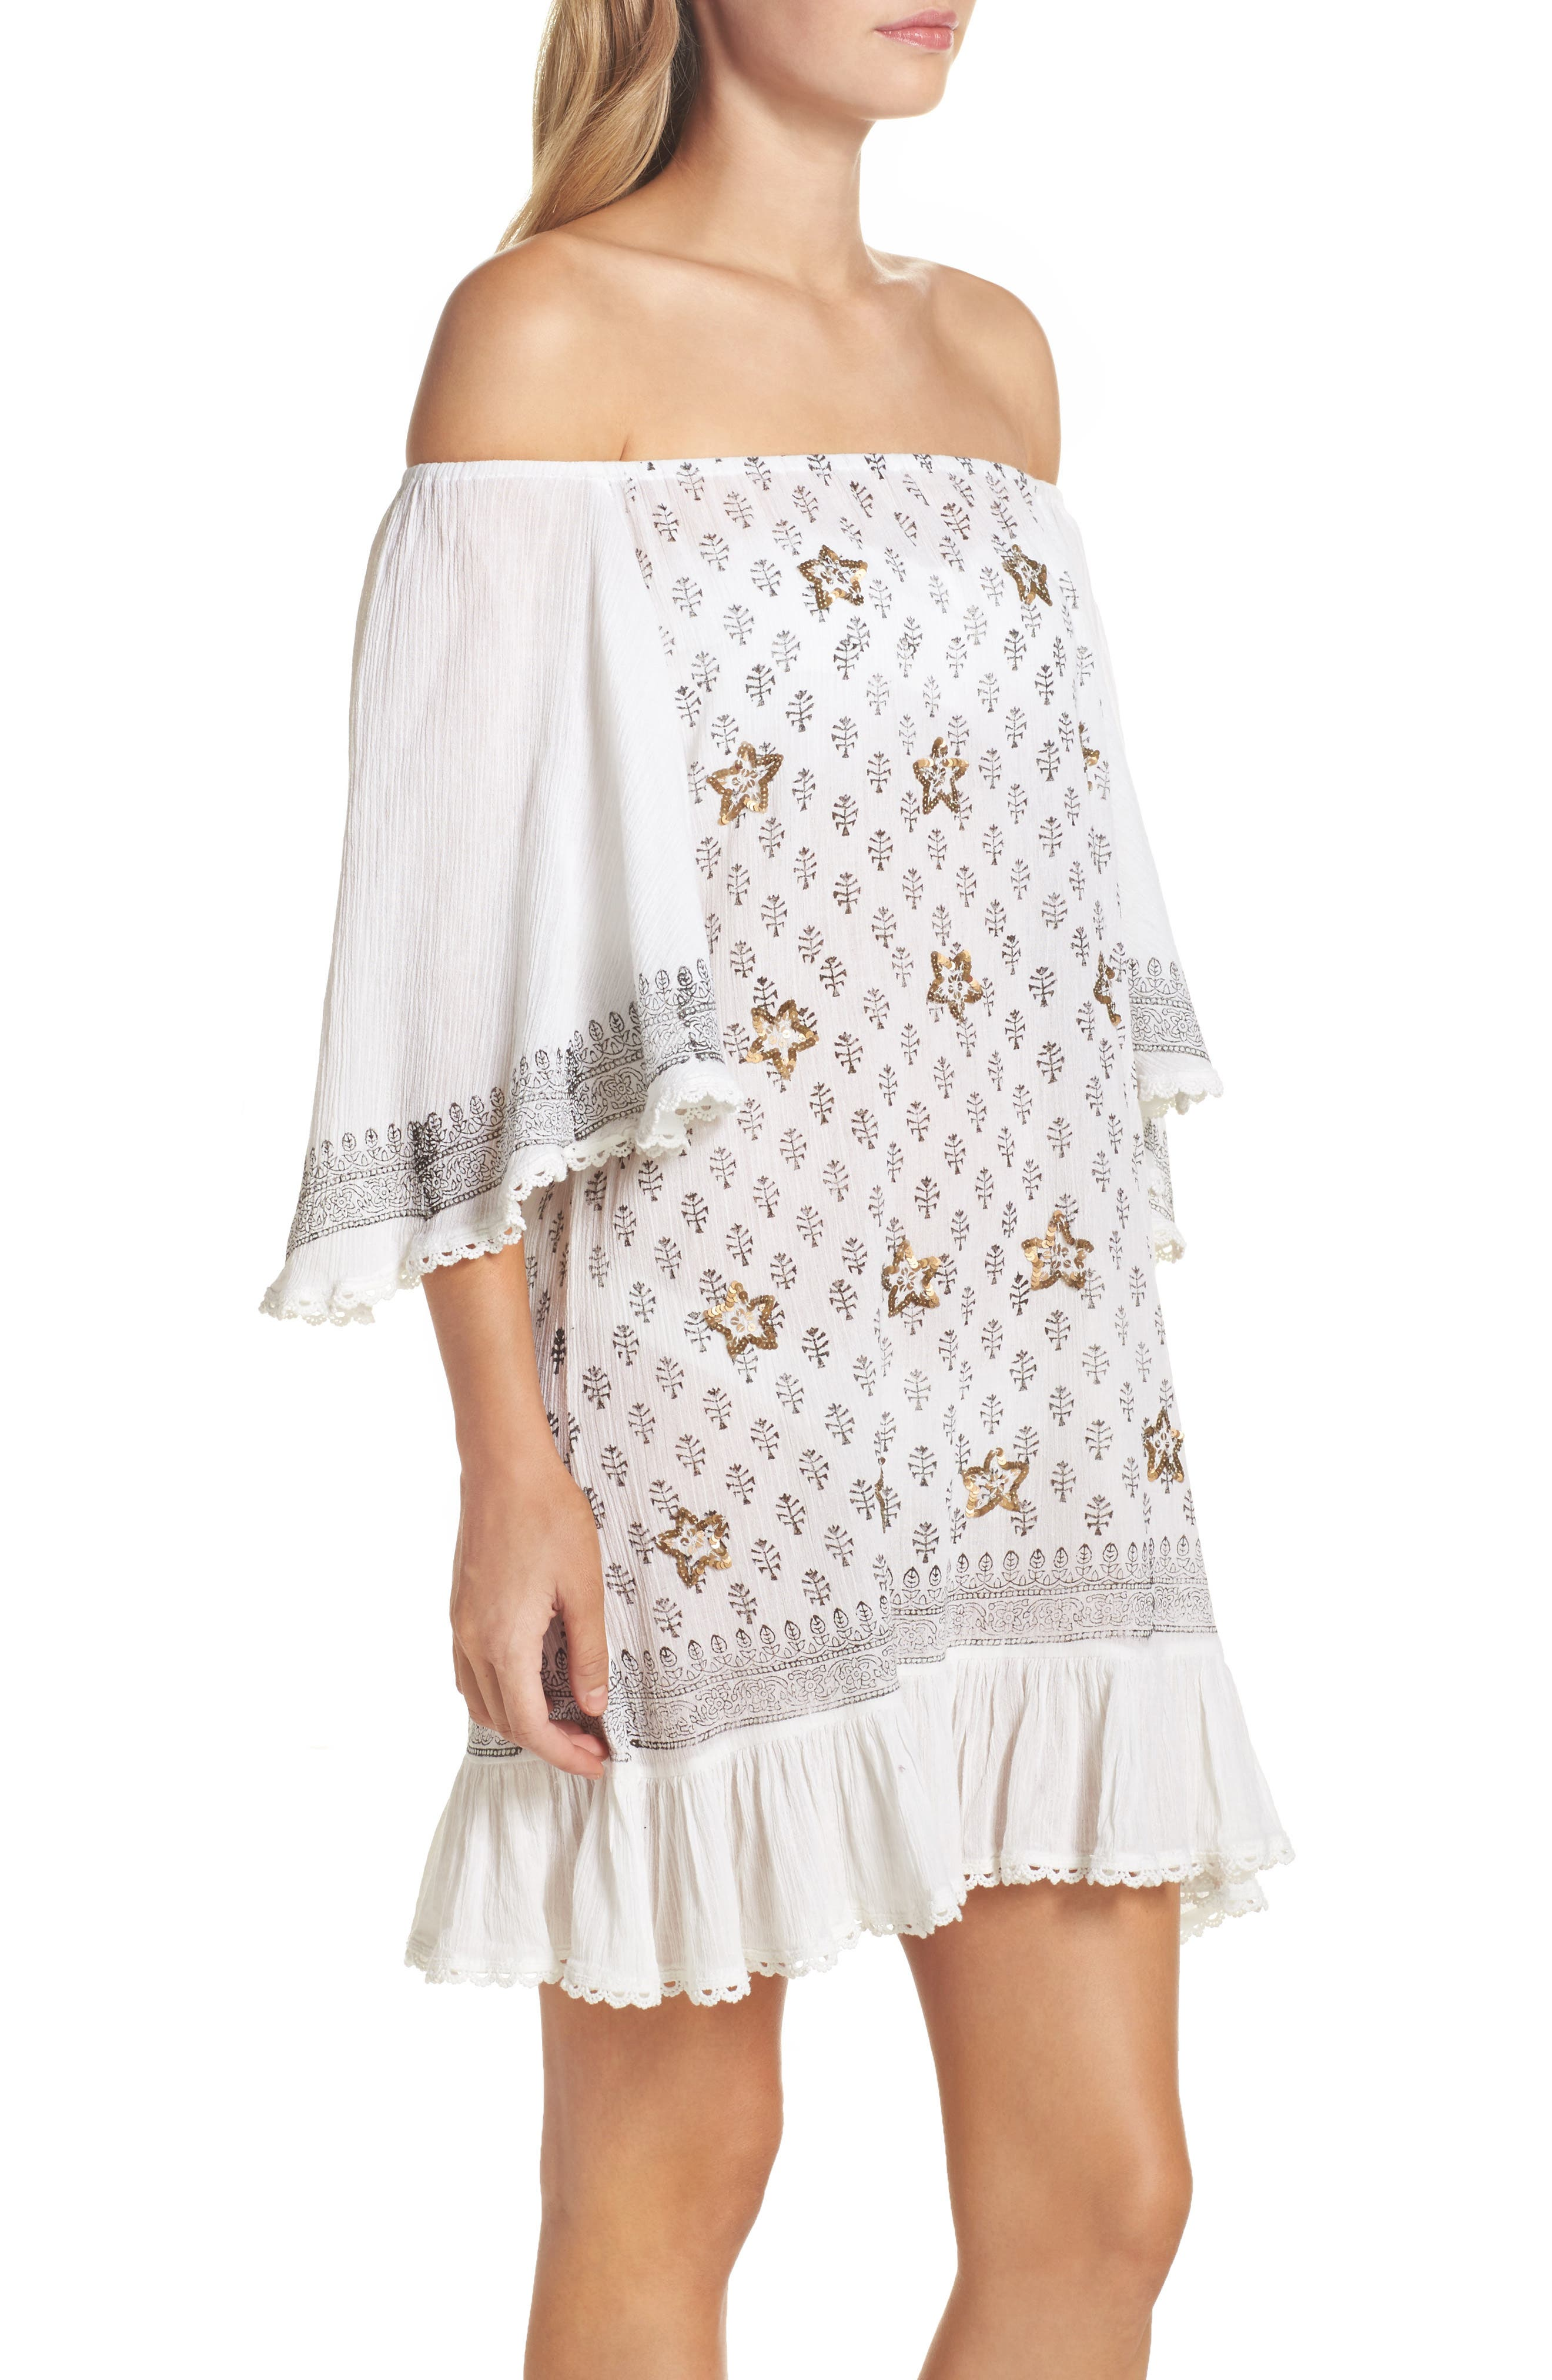 Dreamer Off the Shoulder Cover-Up Dress,                             Alternate thumbnail 3, color,                             White